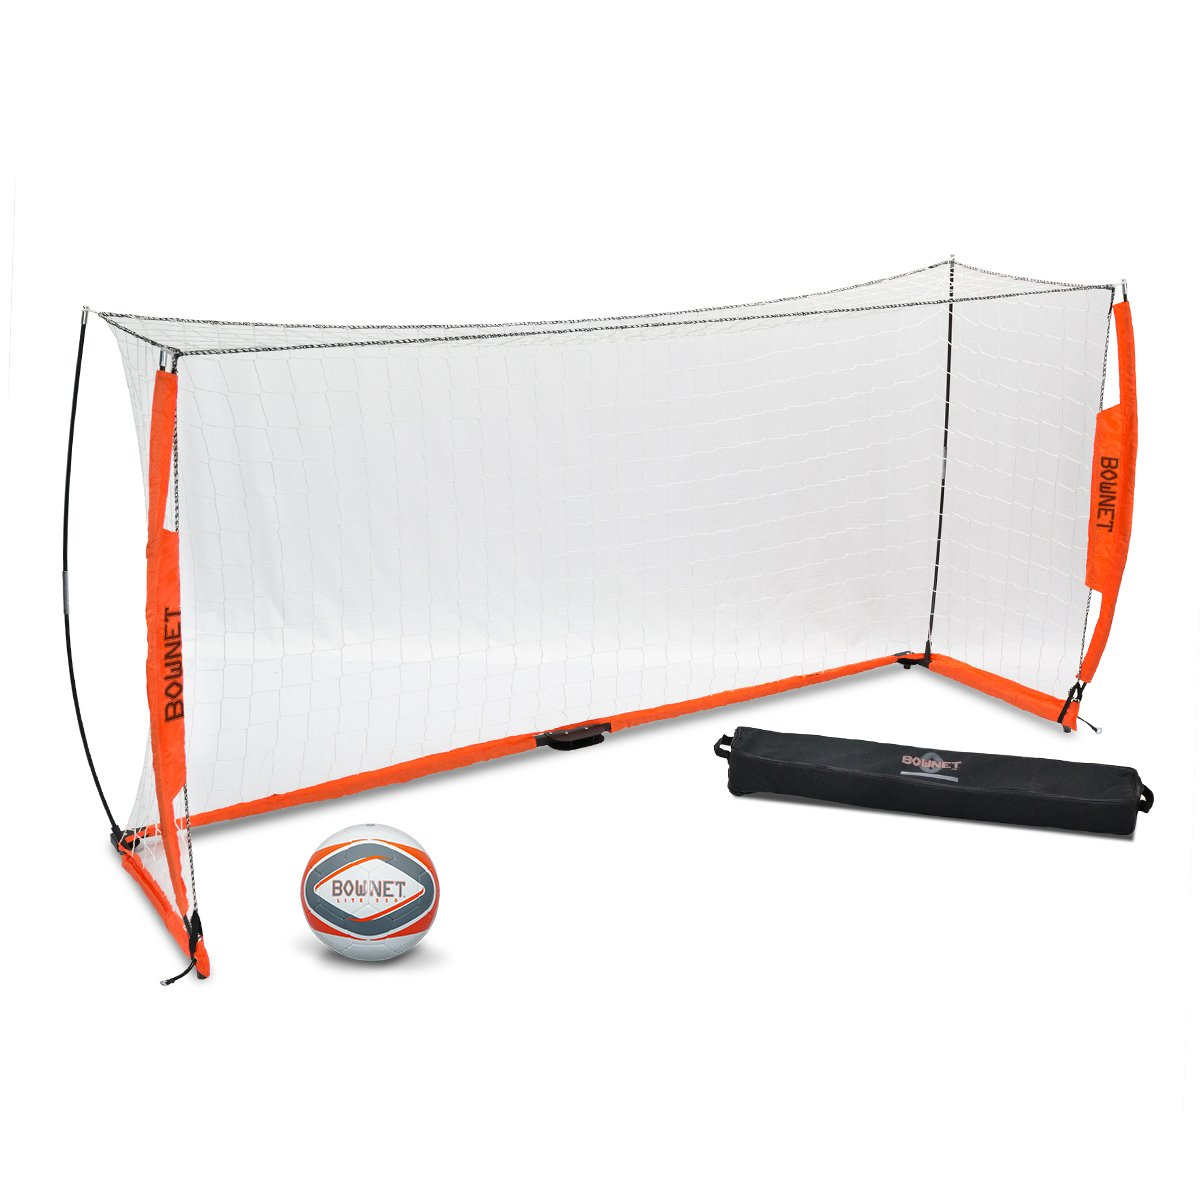 BUNDLE PACK - Bownet 5' x 10' Soccer Goal with Lite Soccer Ball, Size 5